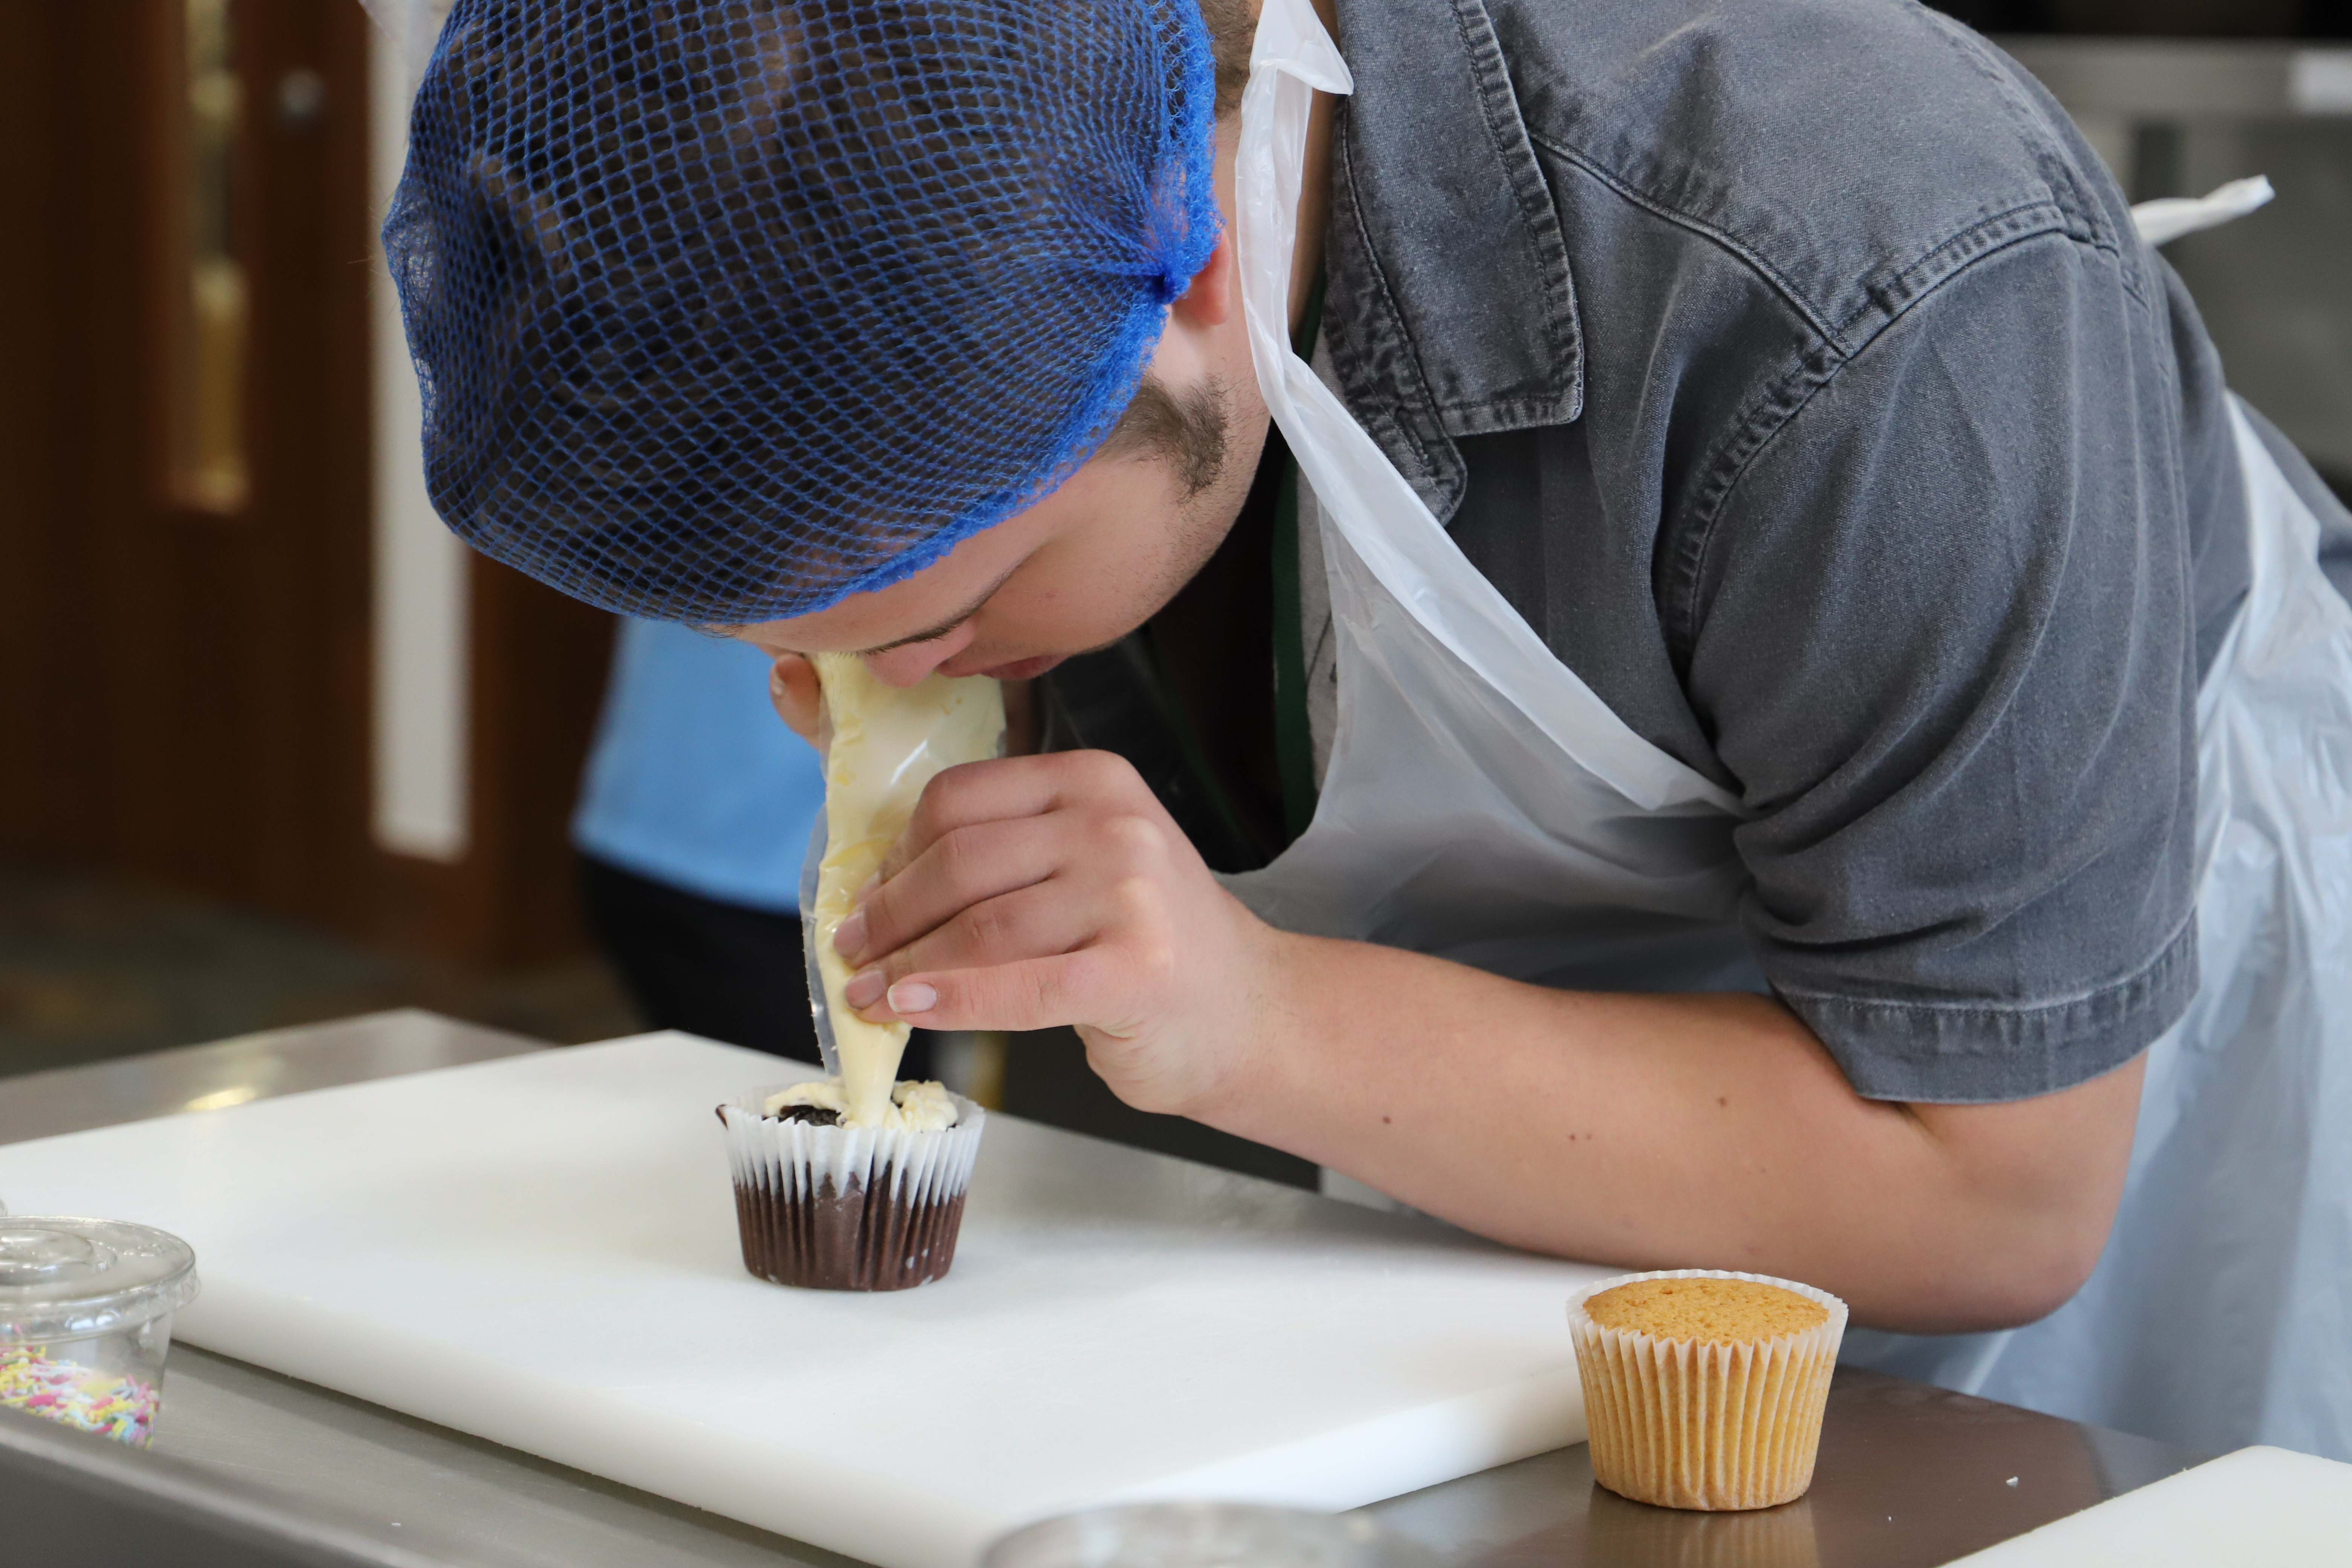 A student practising cake decorating